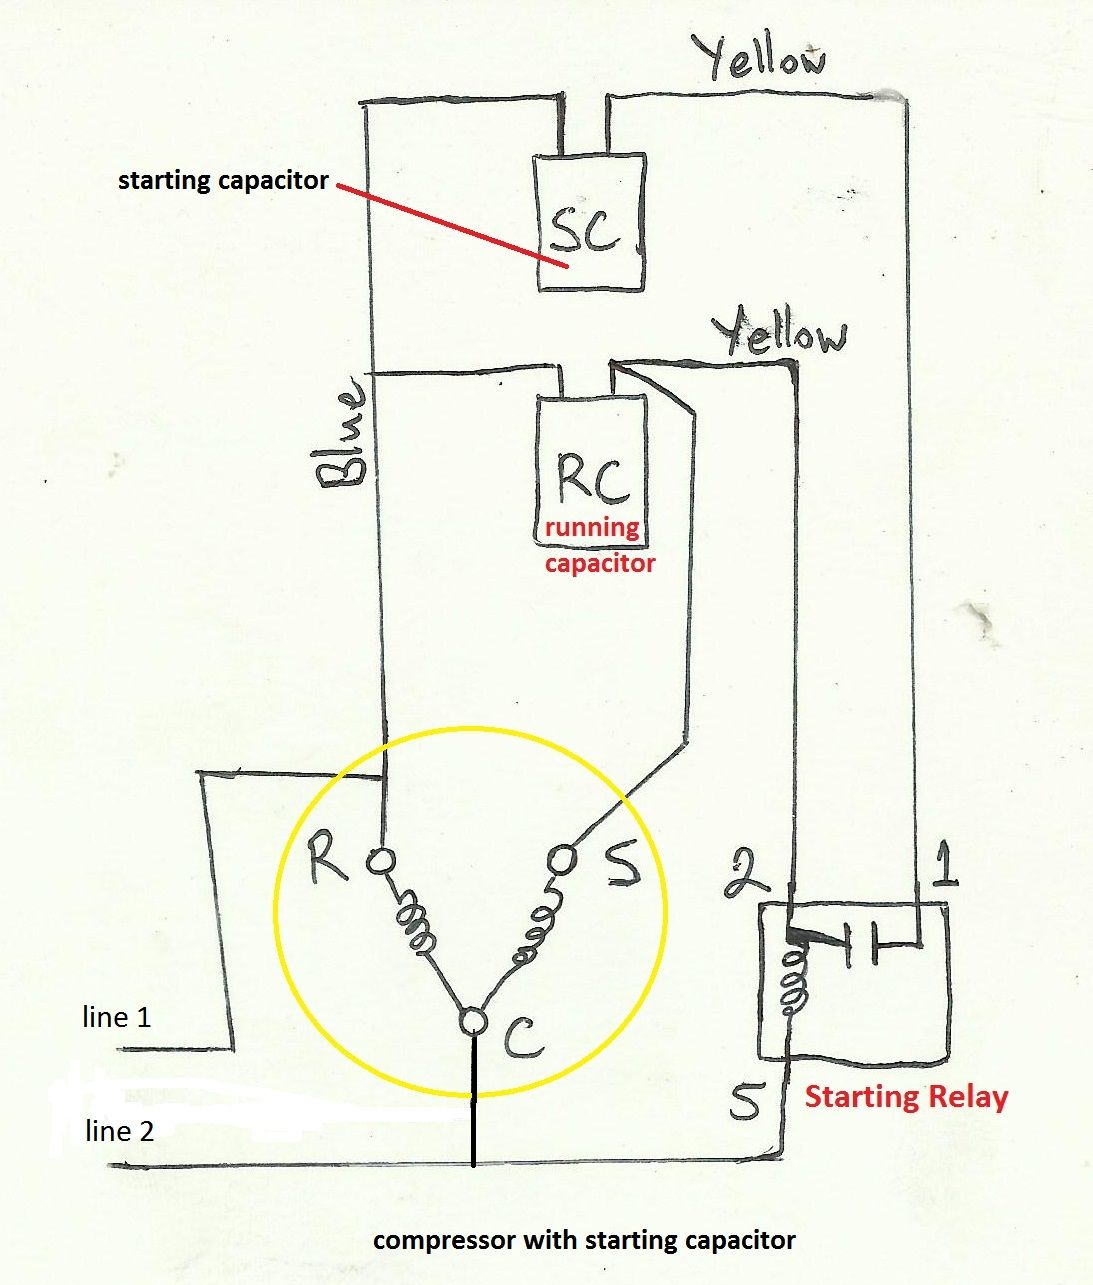 air compressor capacitor wiring diagram before you call a ac repair rh pinterest com Relay Wiring Diagram Compressor Pressure Switch Wiring Diagram